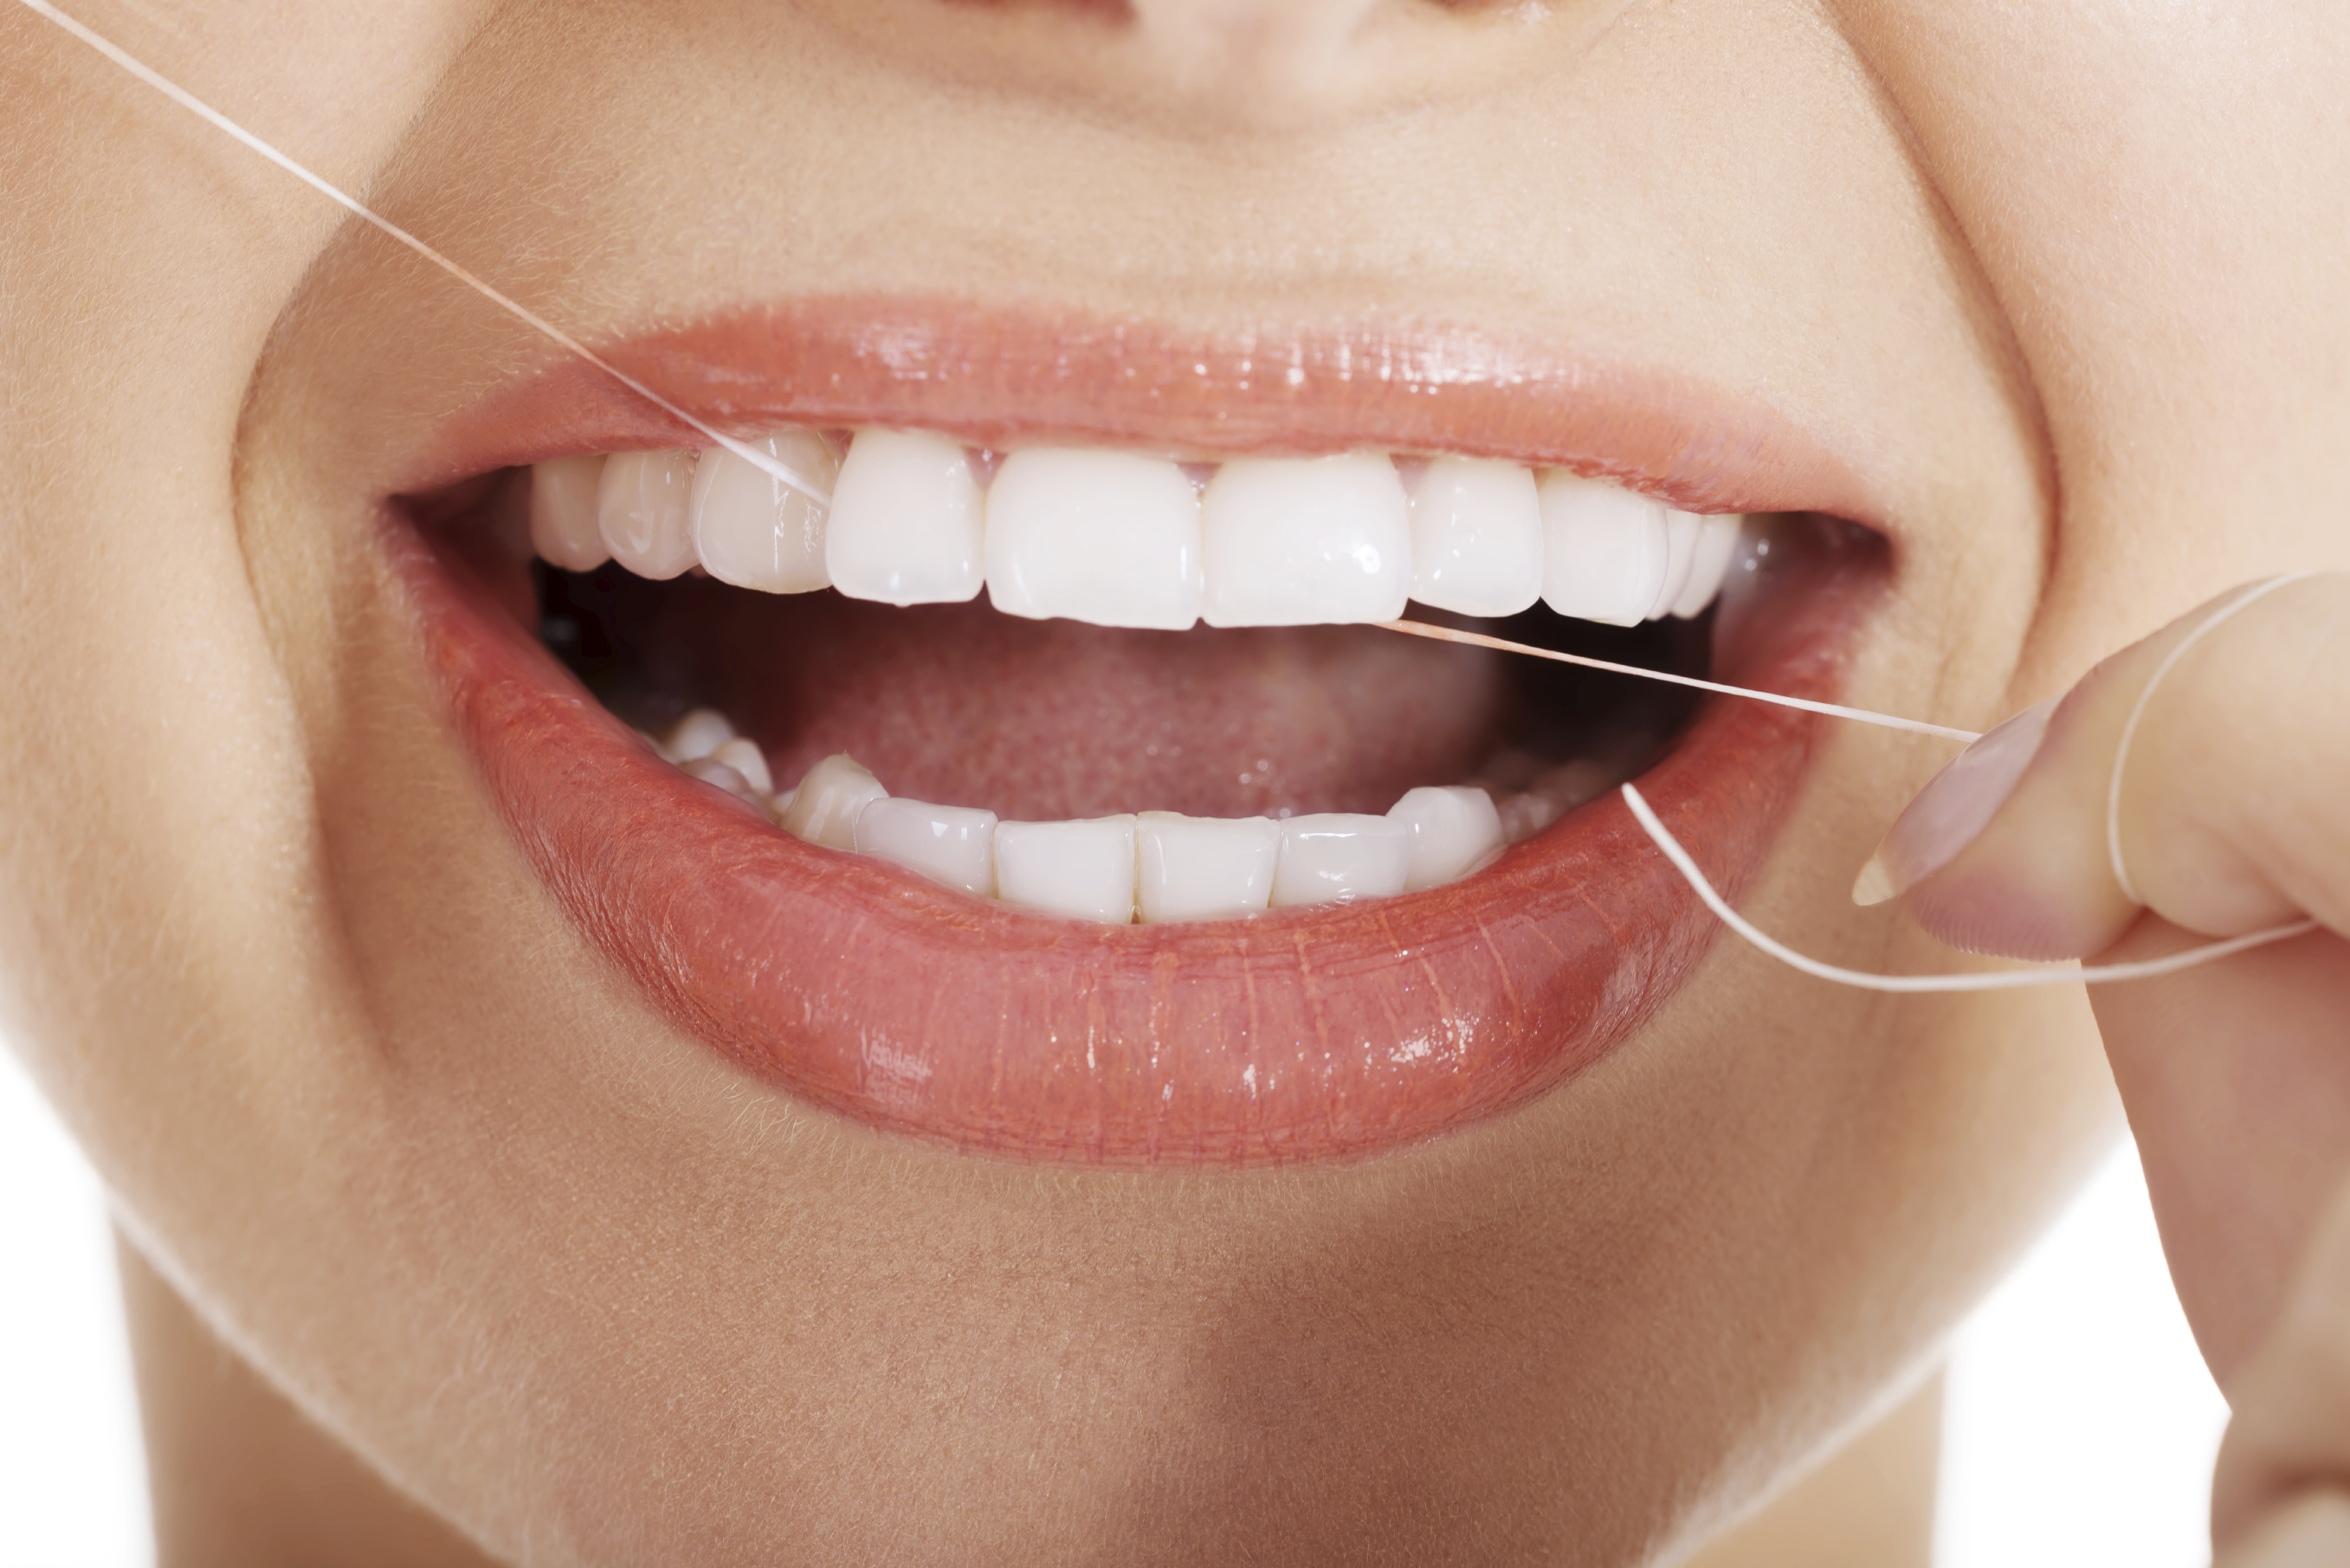 dental floss and oral health